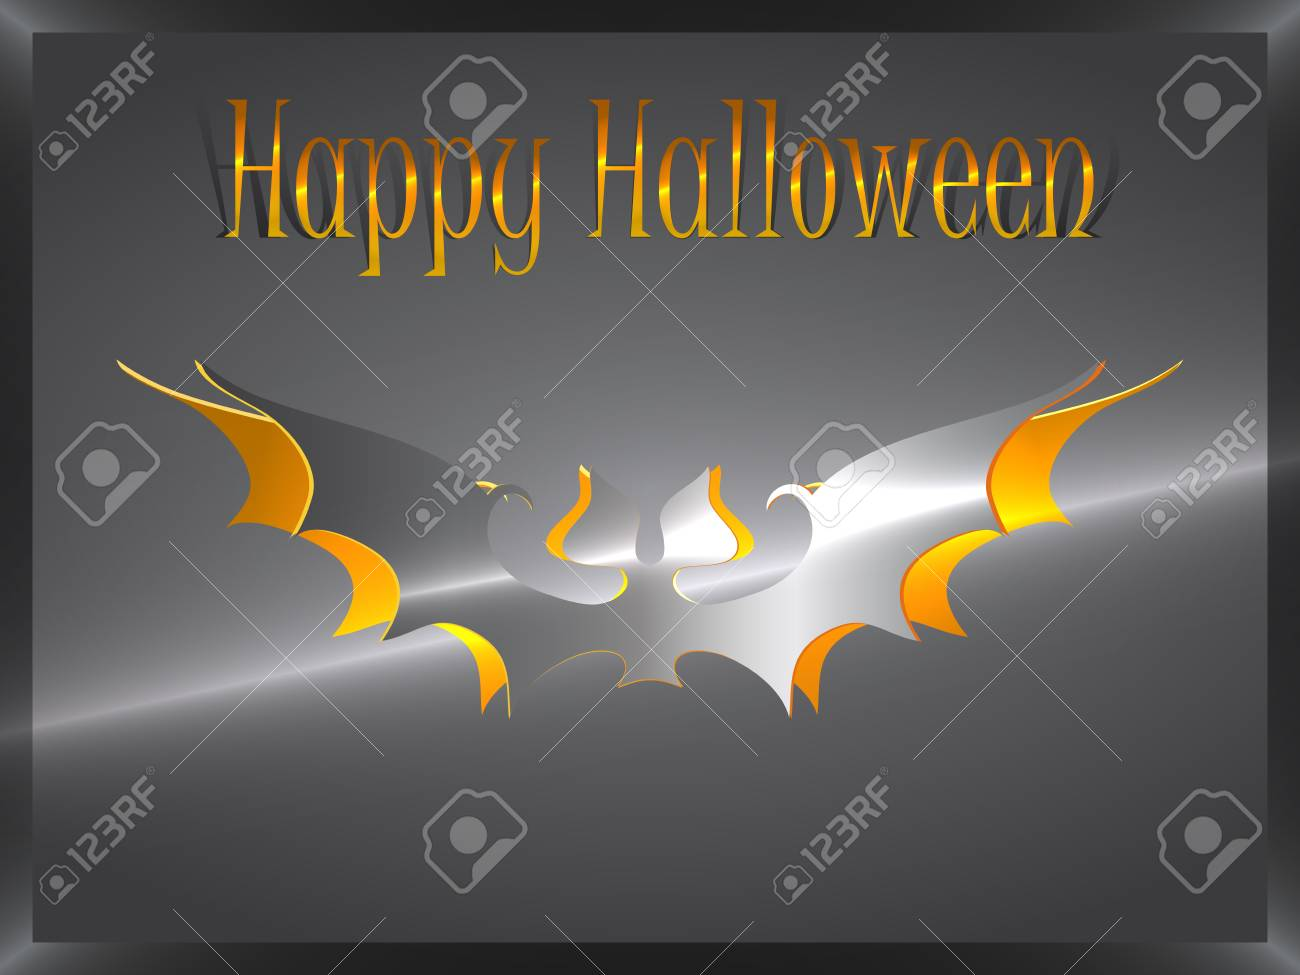 cut foil halloween bat on a dark background and is signed with